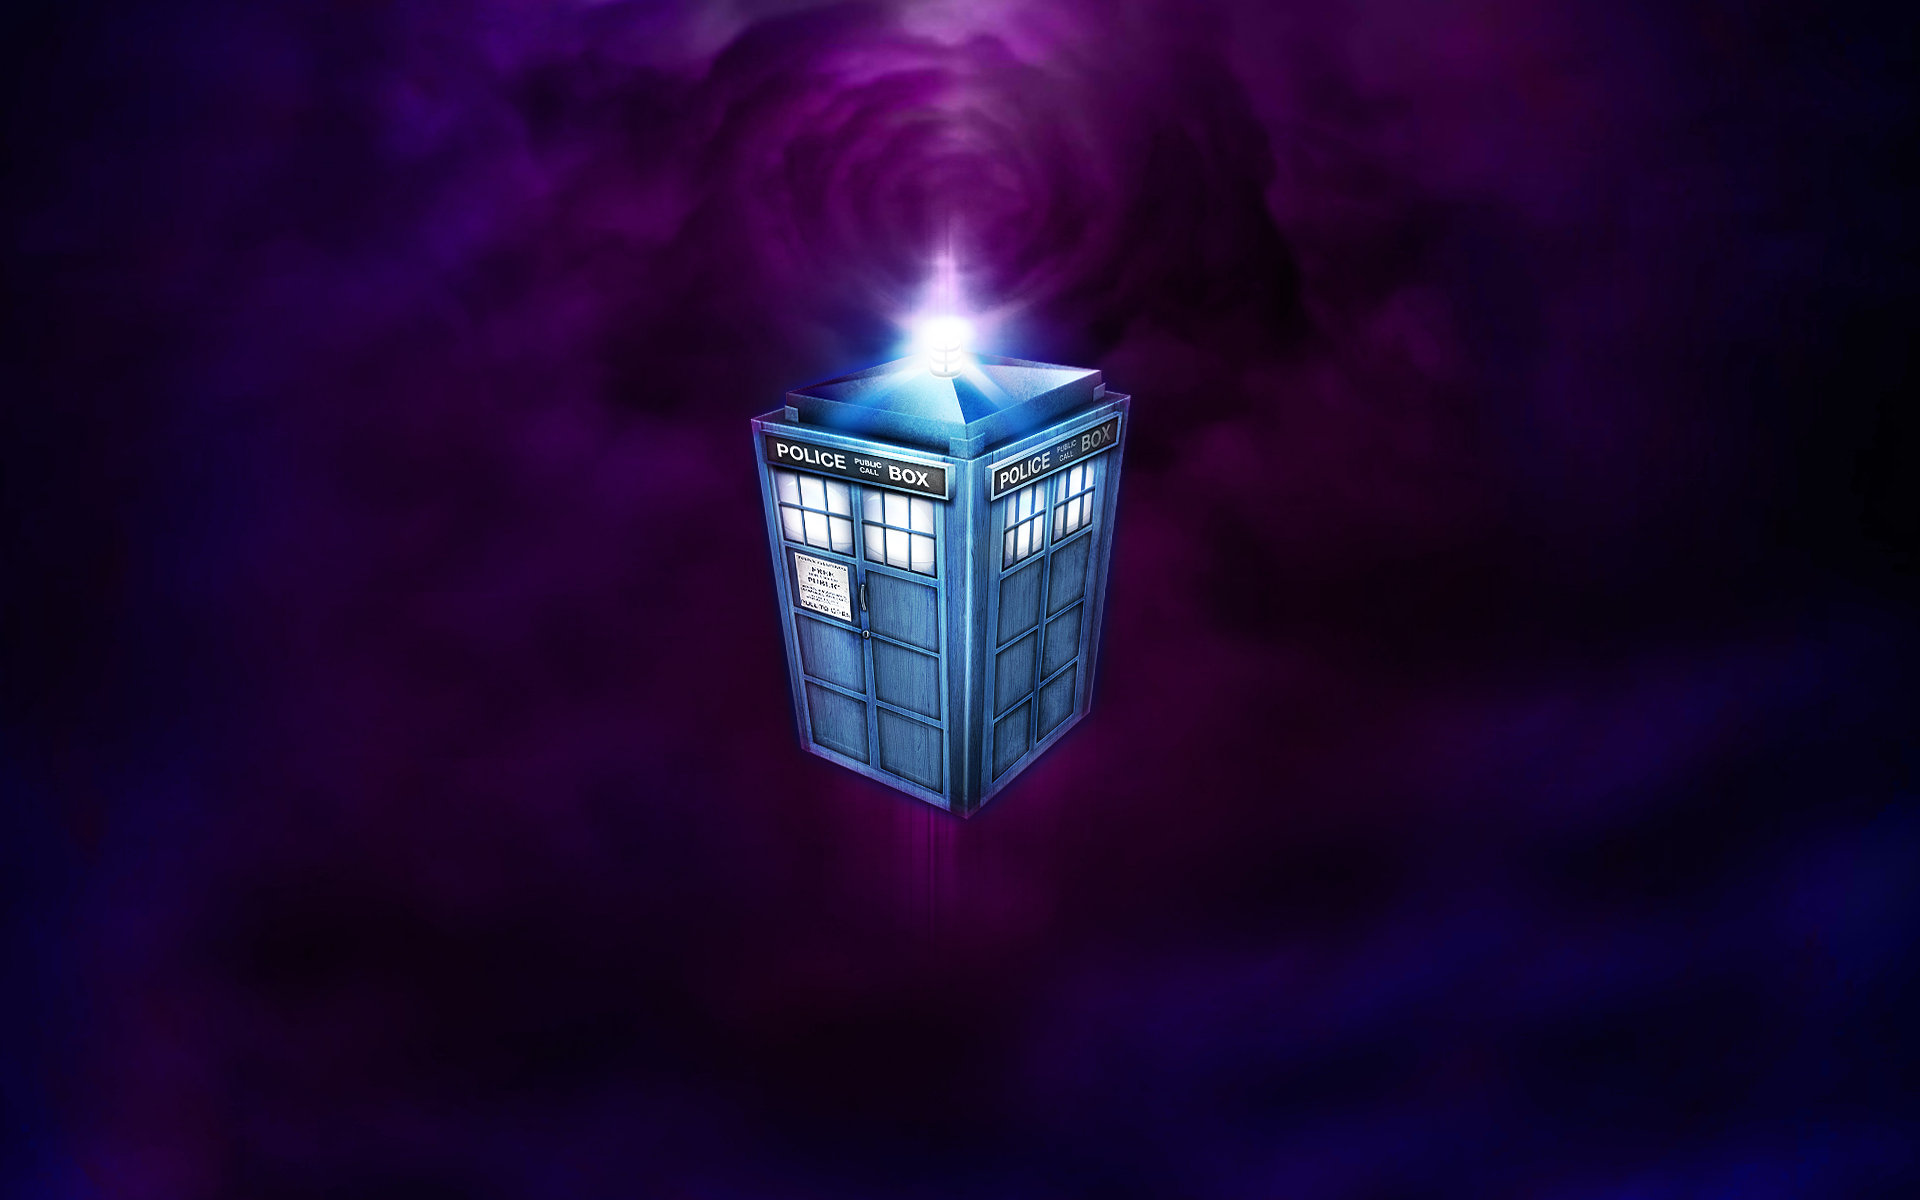 Tardis Wallpapers, Photos And Desktop Backgrounds Up To 8K